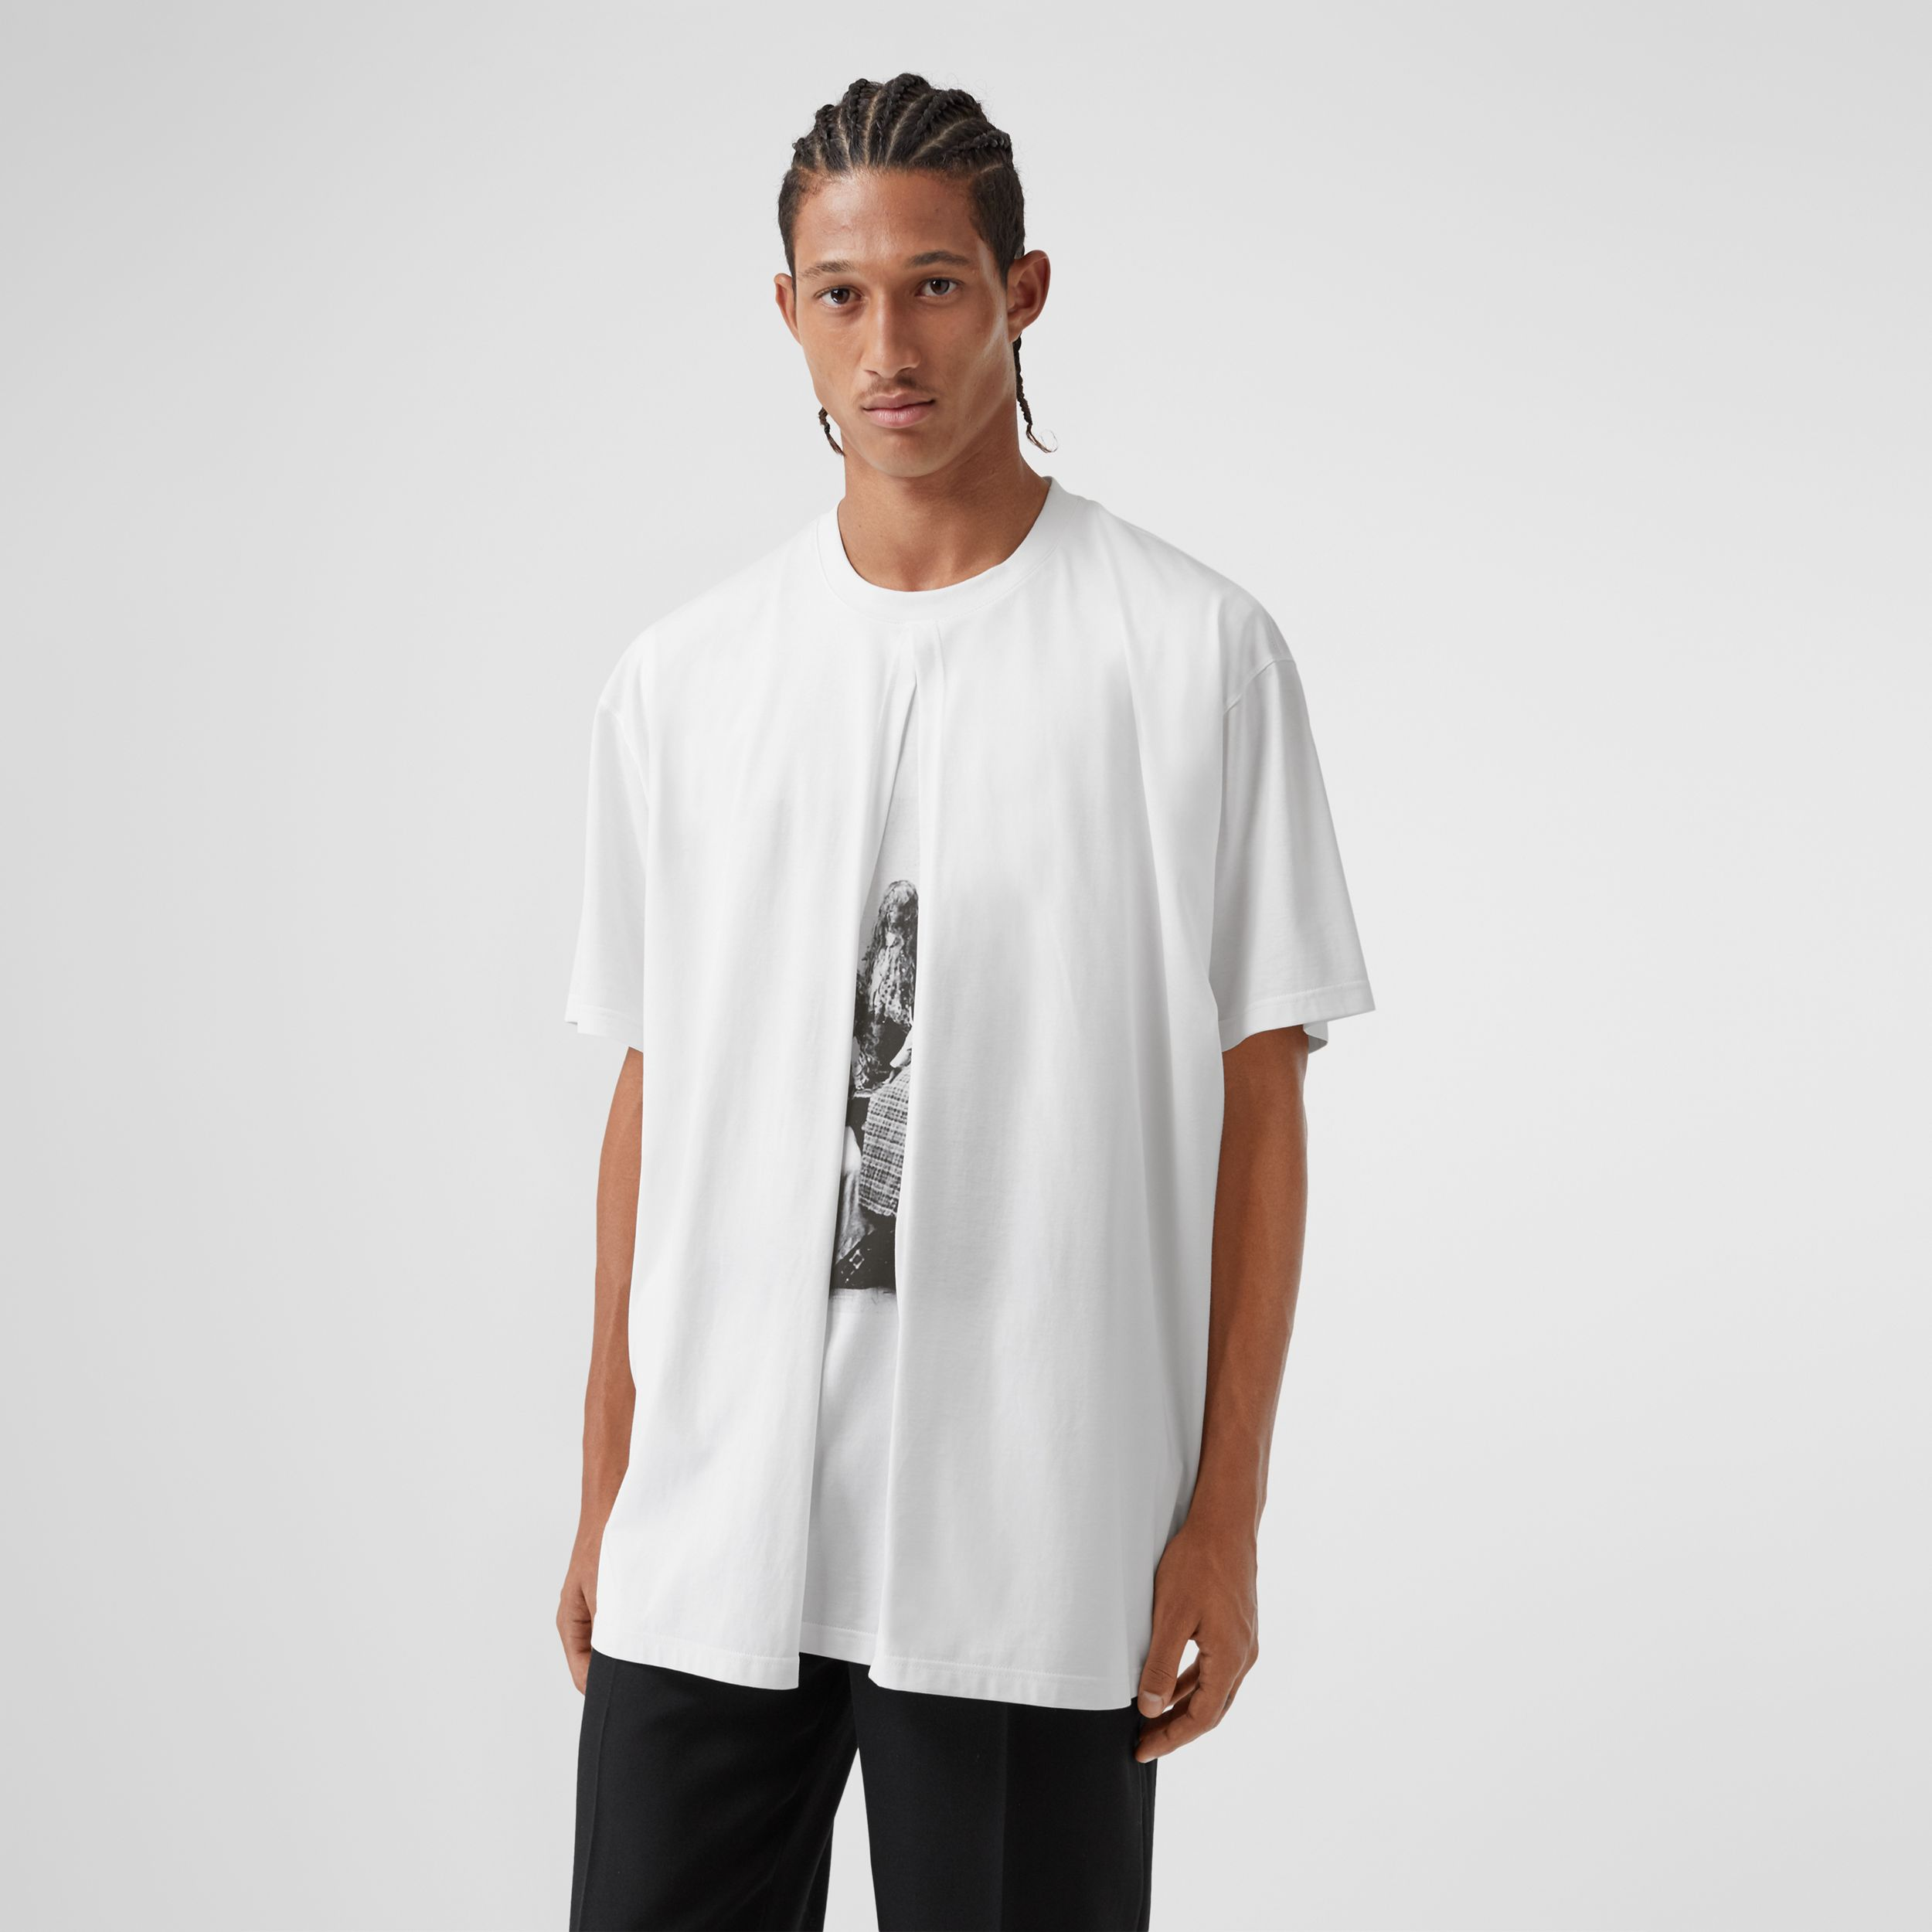 Victorian Portrait Print Cotton Oversized T-shirt in Optic White | Burberry - 1